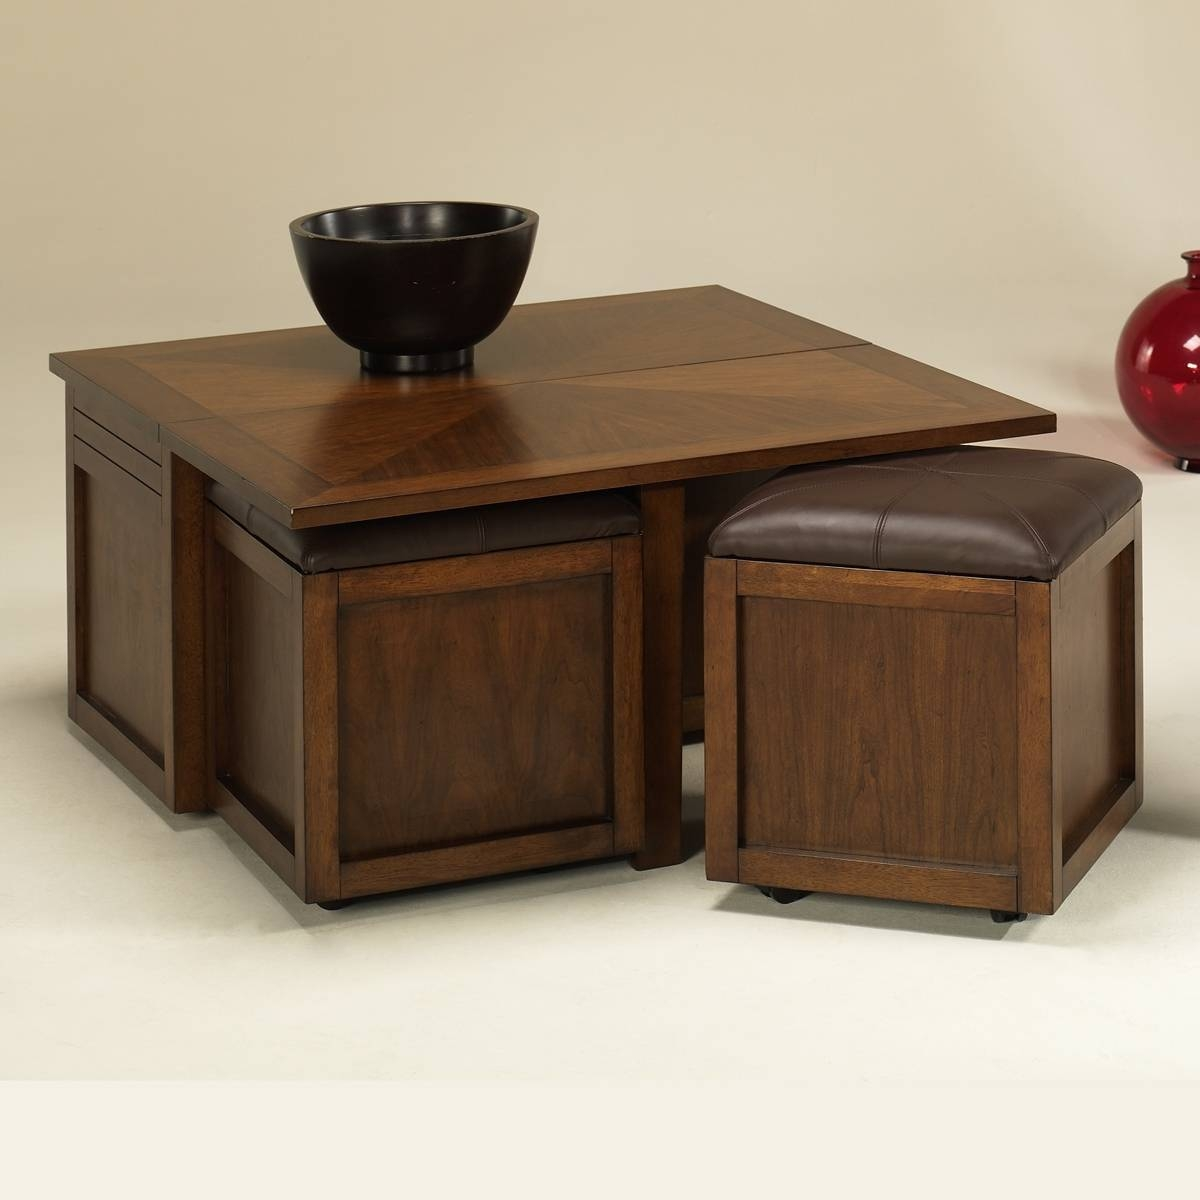 Square Coffee Table With Ottoman Seating | Coffee Tables Decoration For Small Coffee Tables With Storage (View 30 of 30)